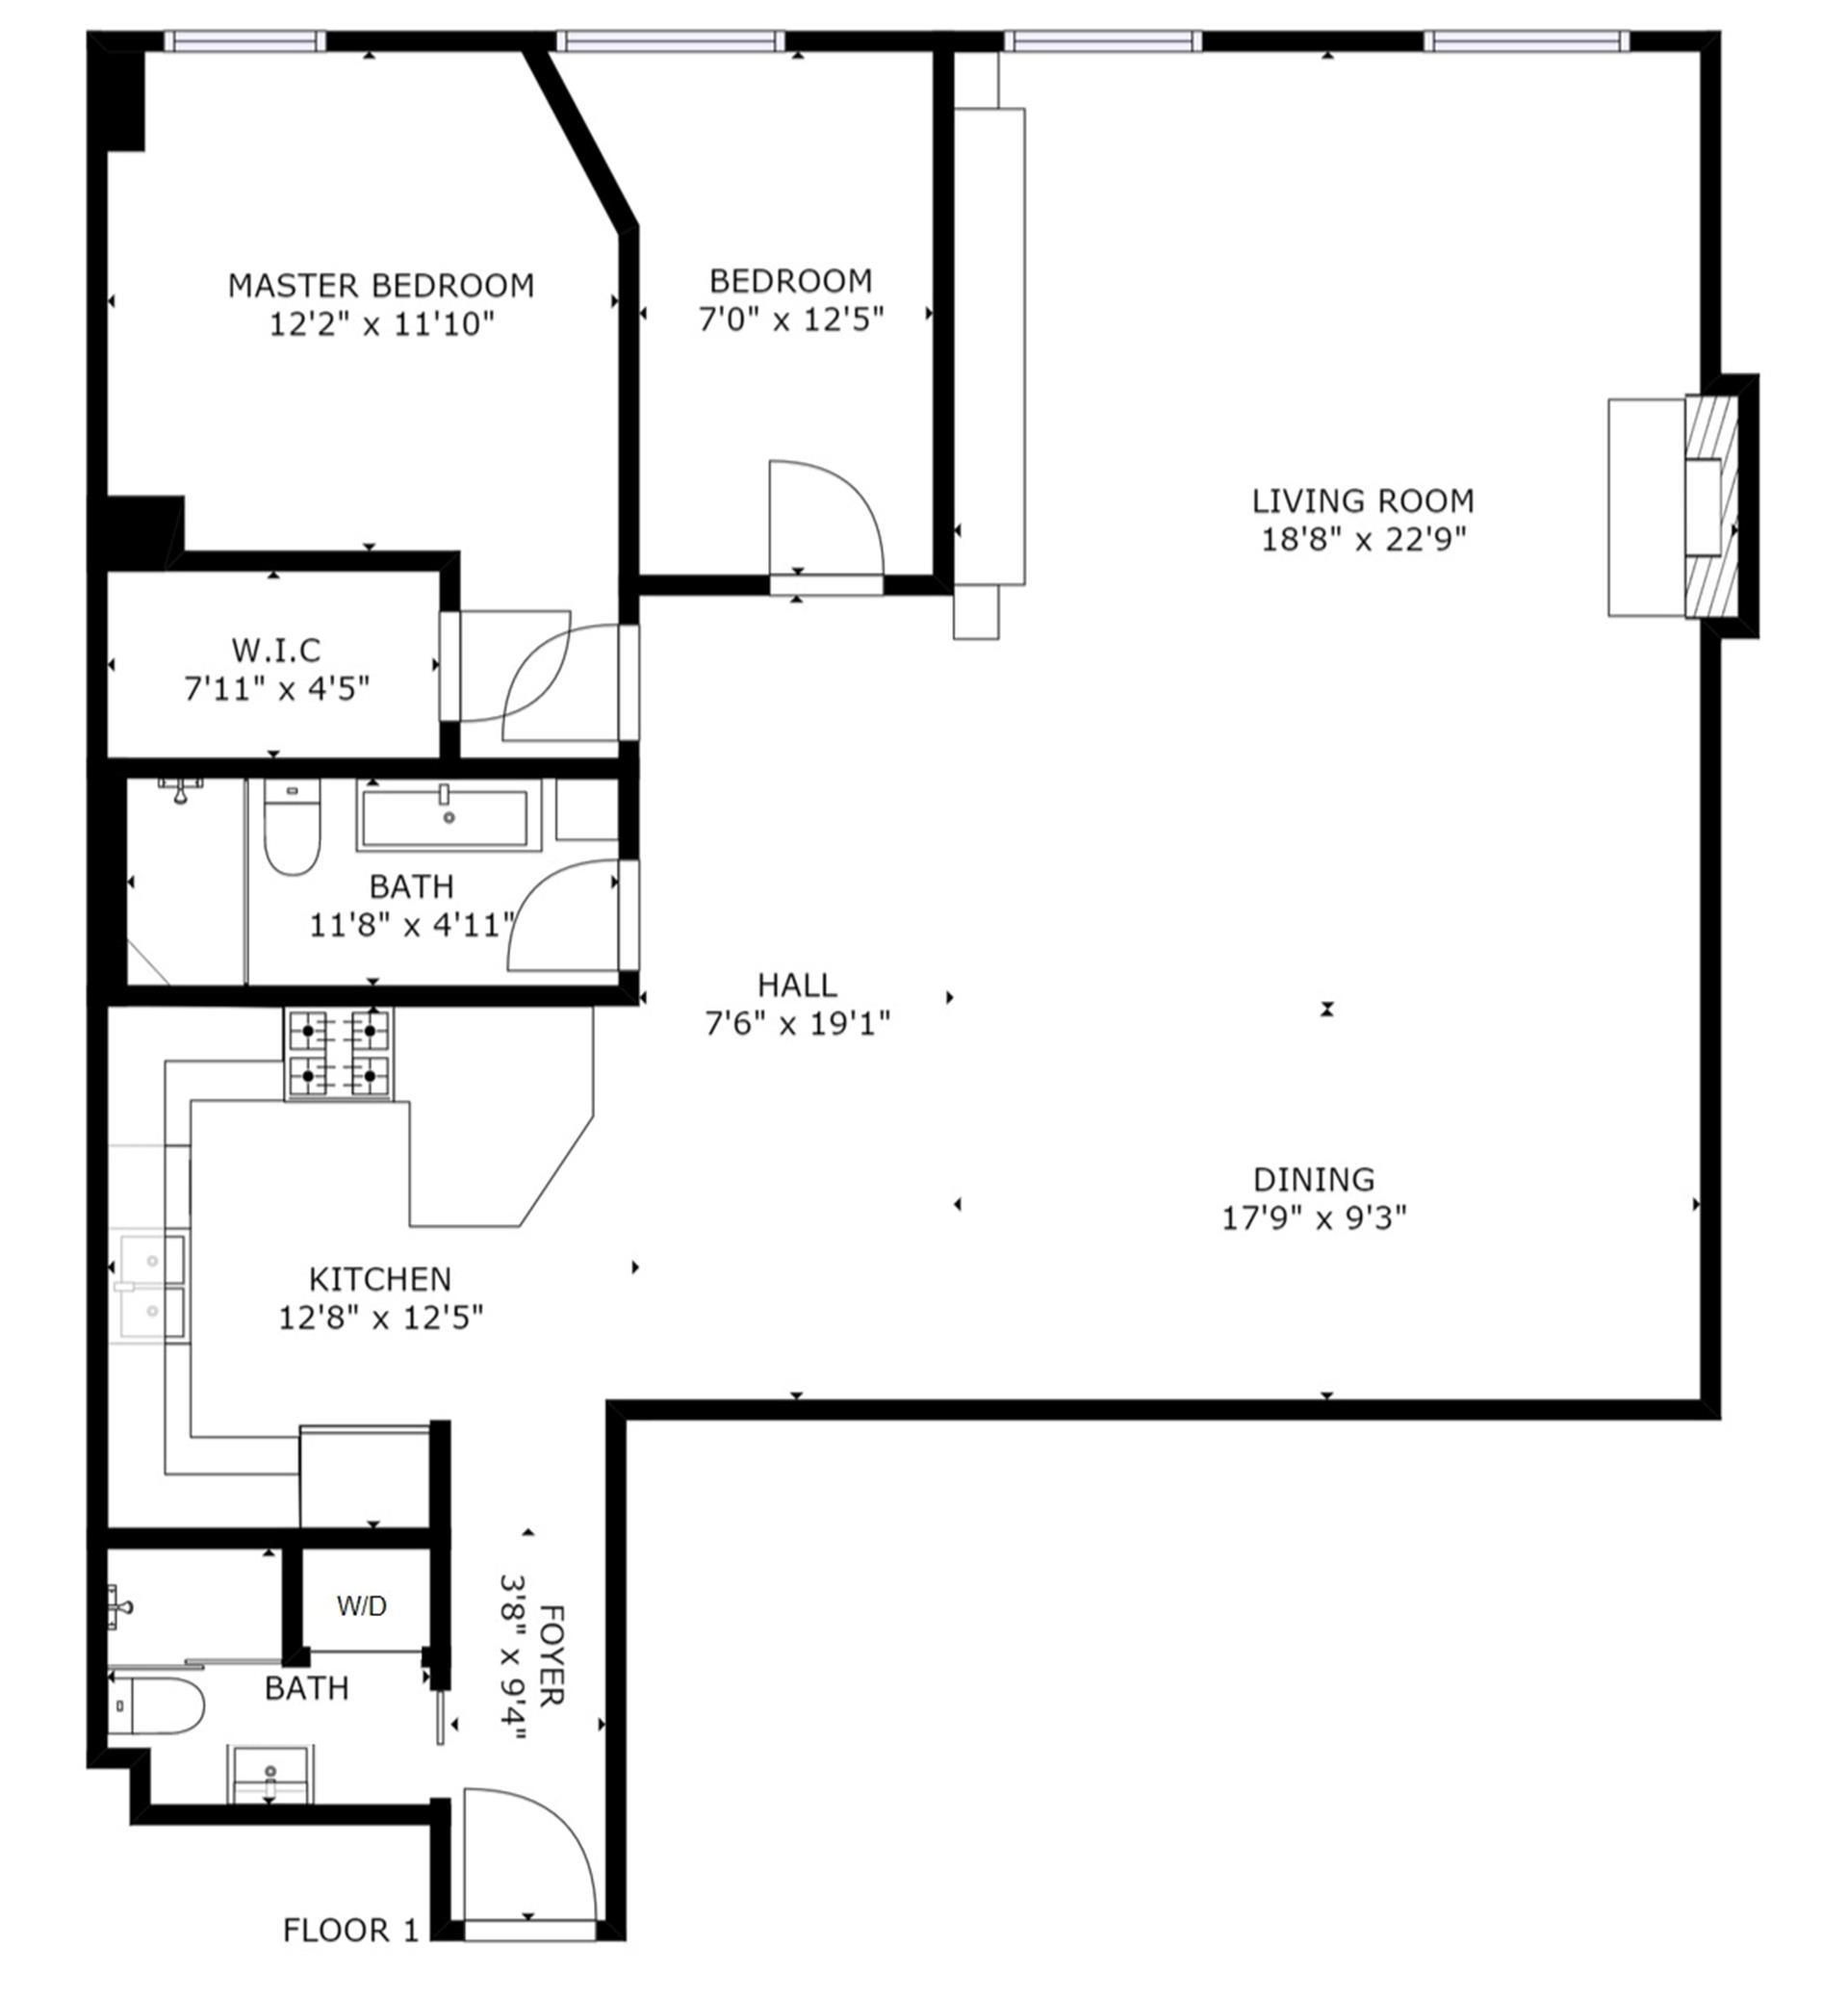 Floor plan of 542 Broadway, 5R - SoHo - Nolita, New York